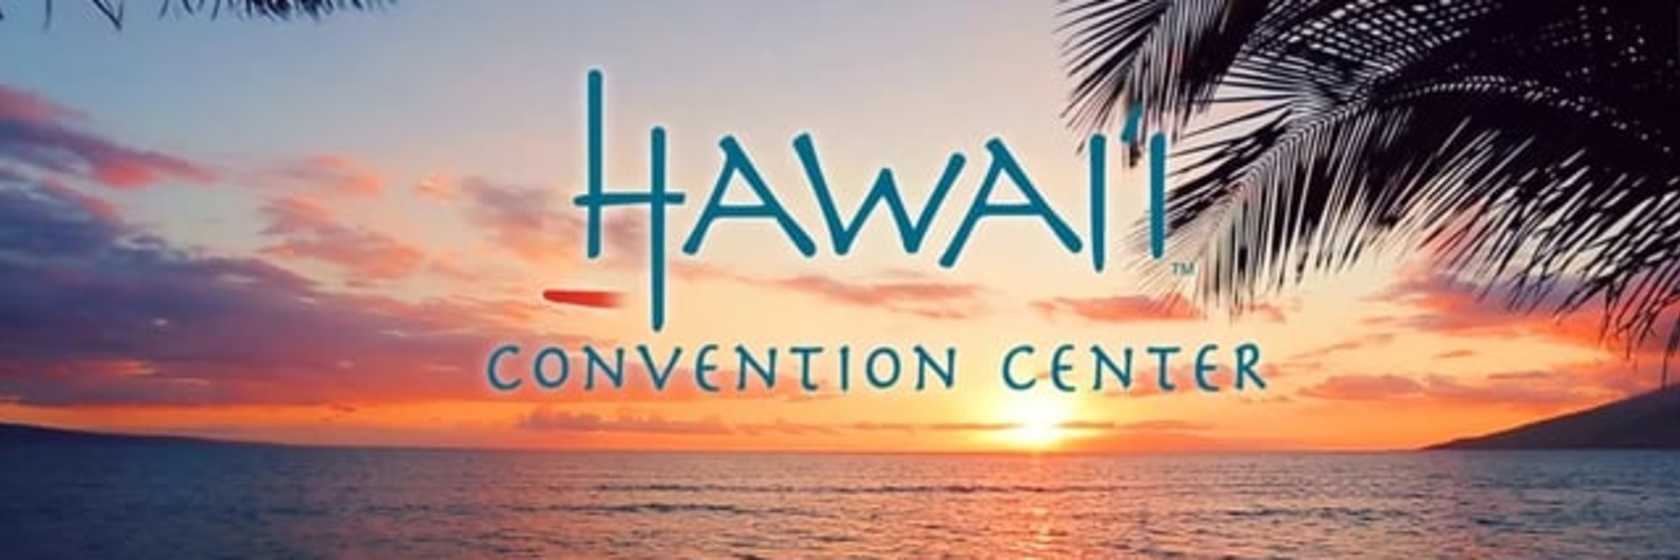 Hawaii Convention Center Official Site